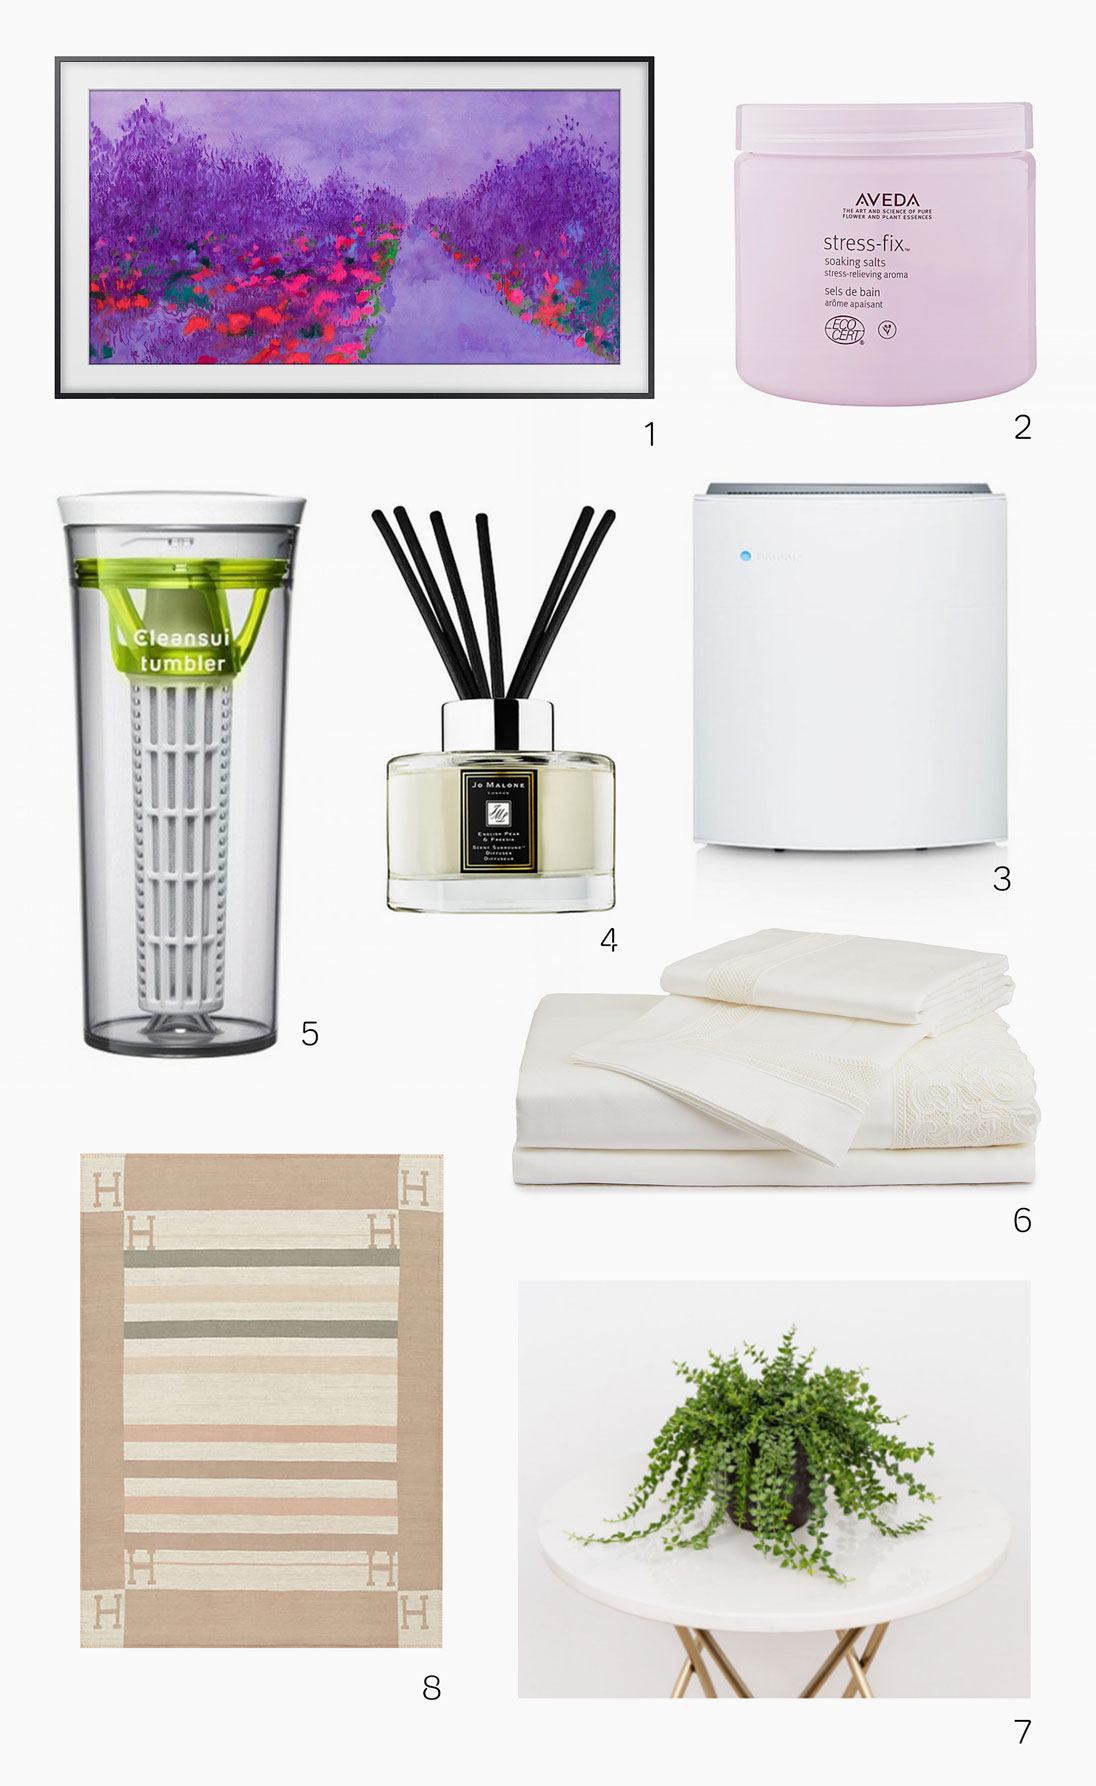 Home wellness products from Samsung, Hermès, Jo Malone, Ellermann, Cleansui, Blueair, Aveda and Frette